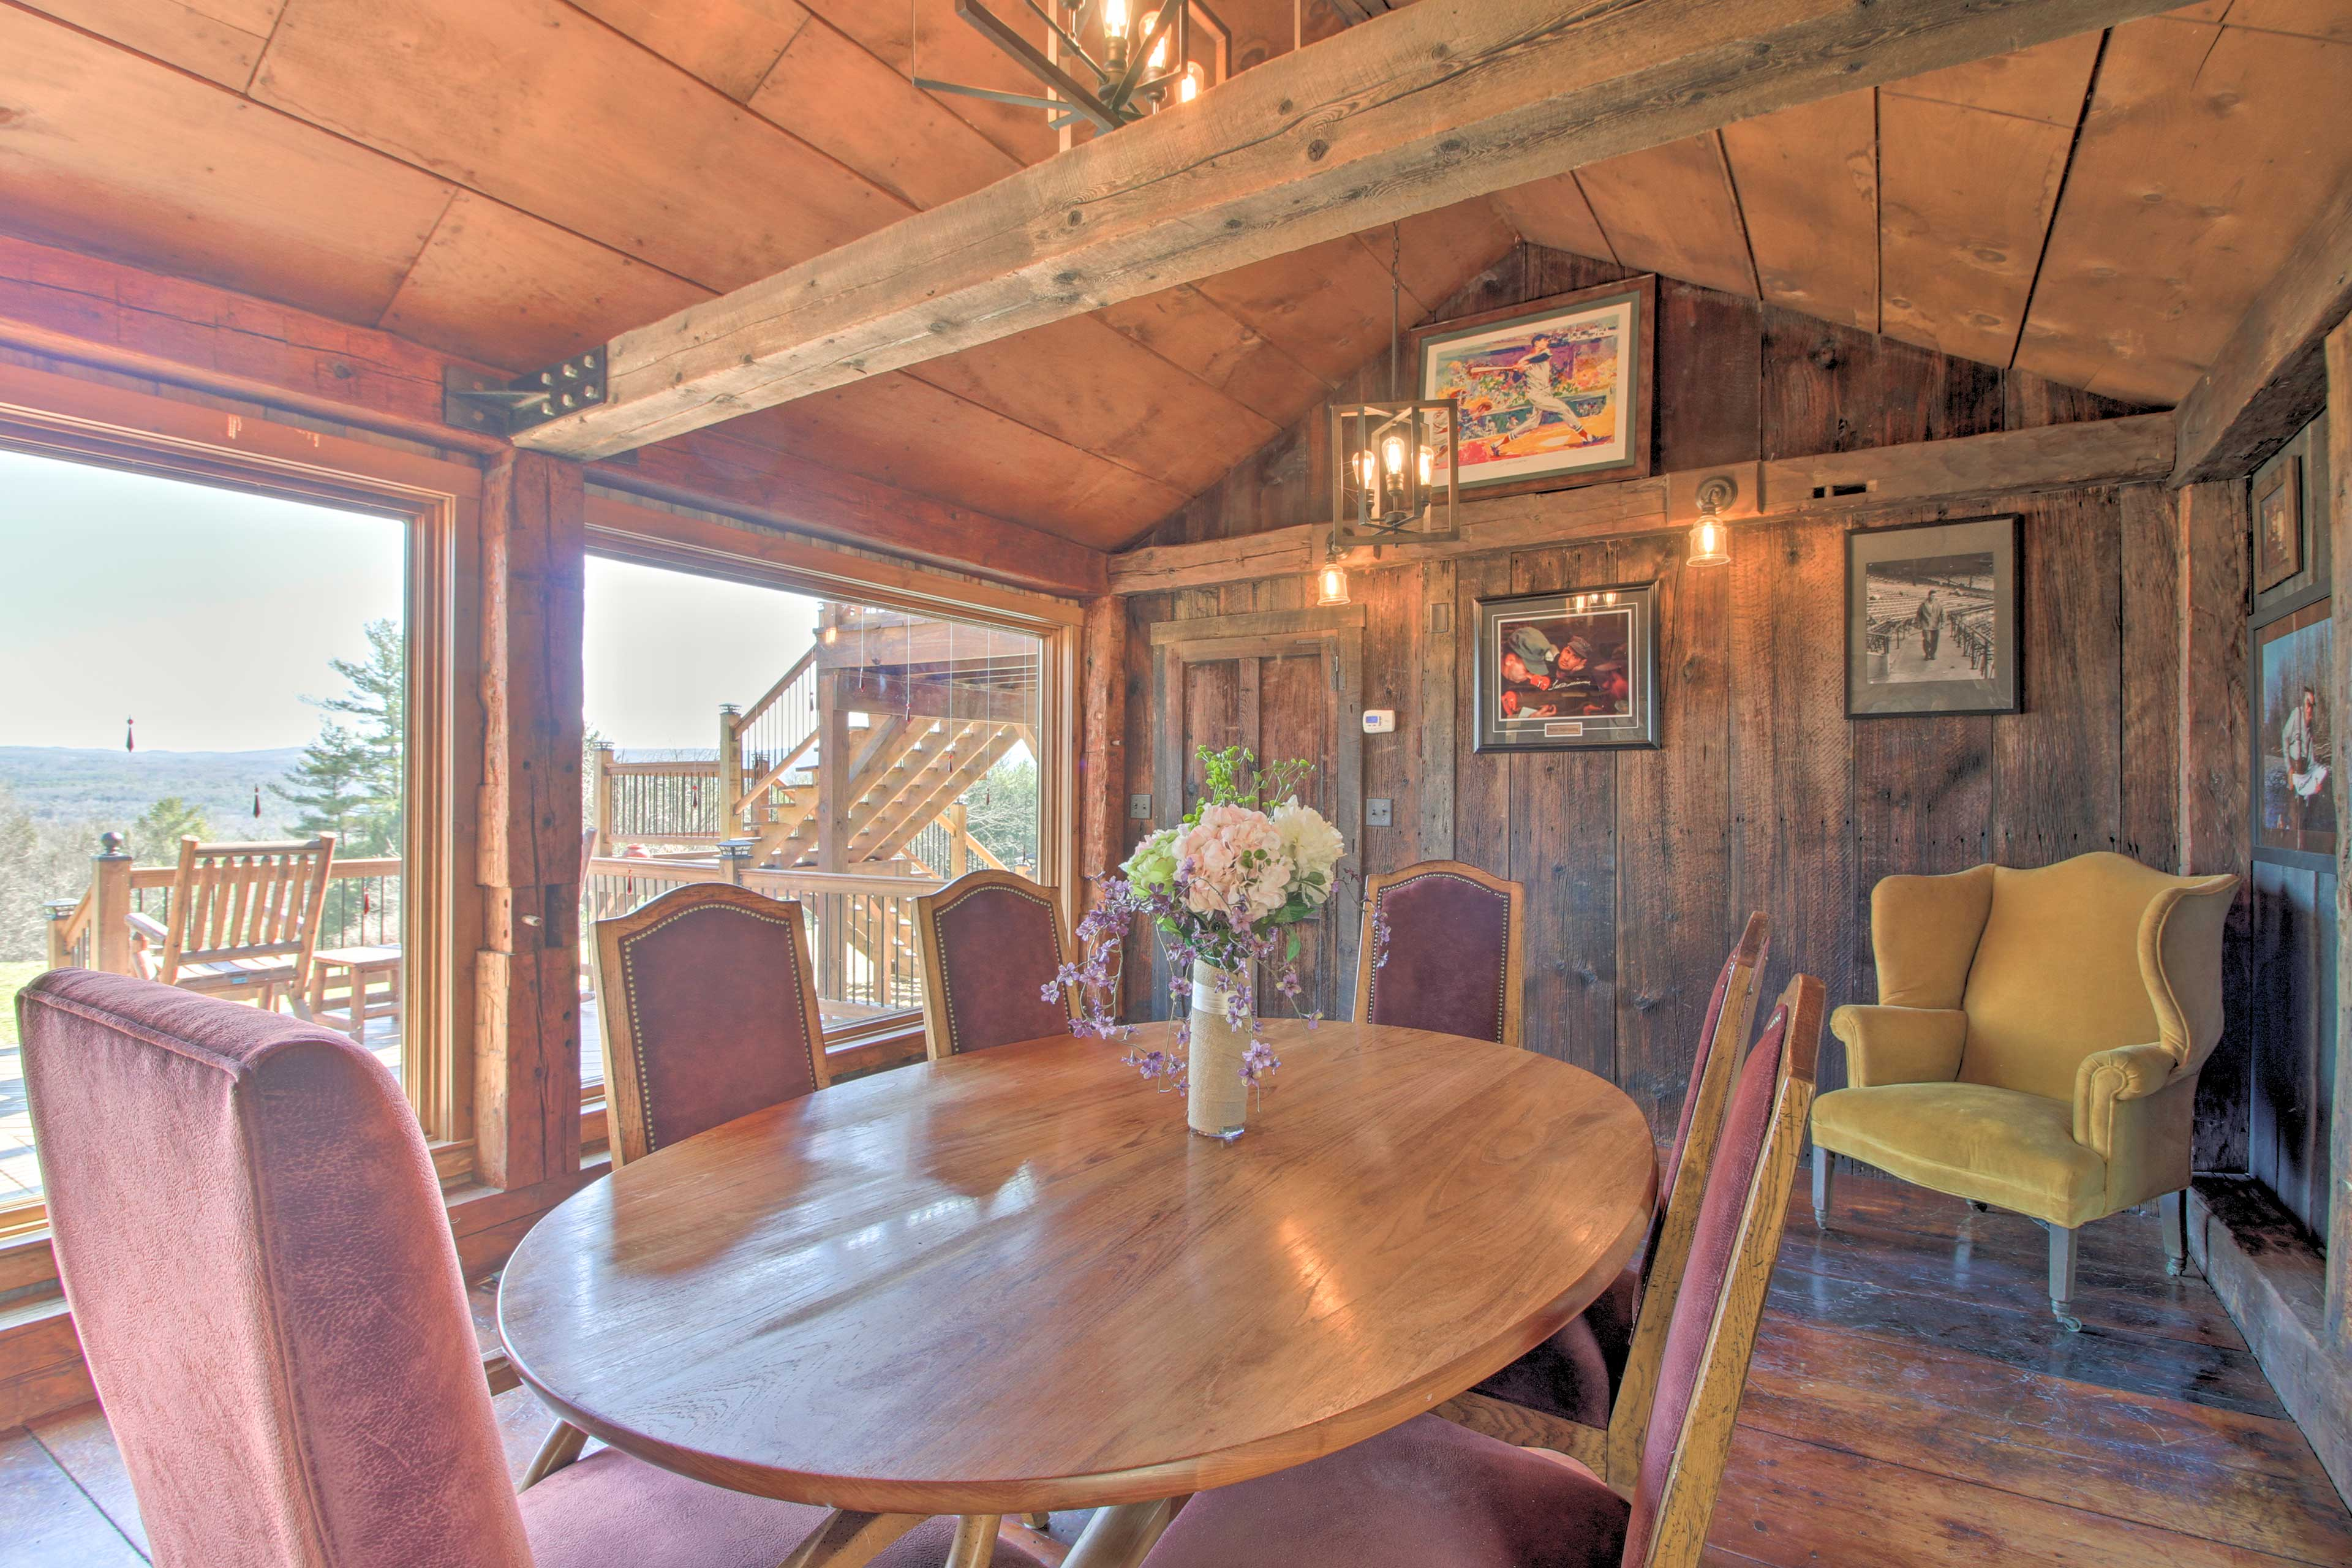 The formal dining room has picture windows and authentic cabin touches.